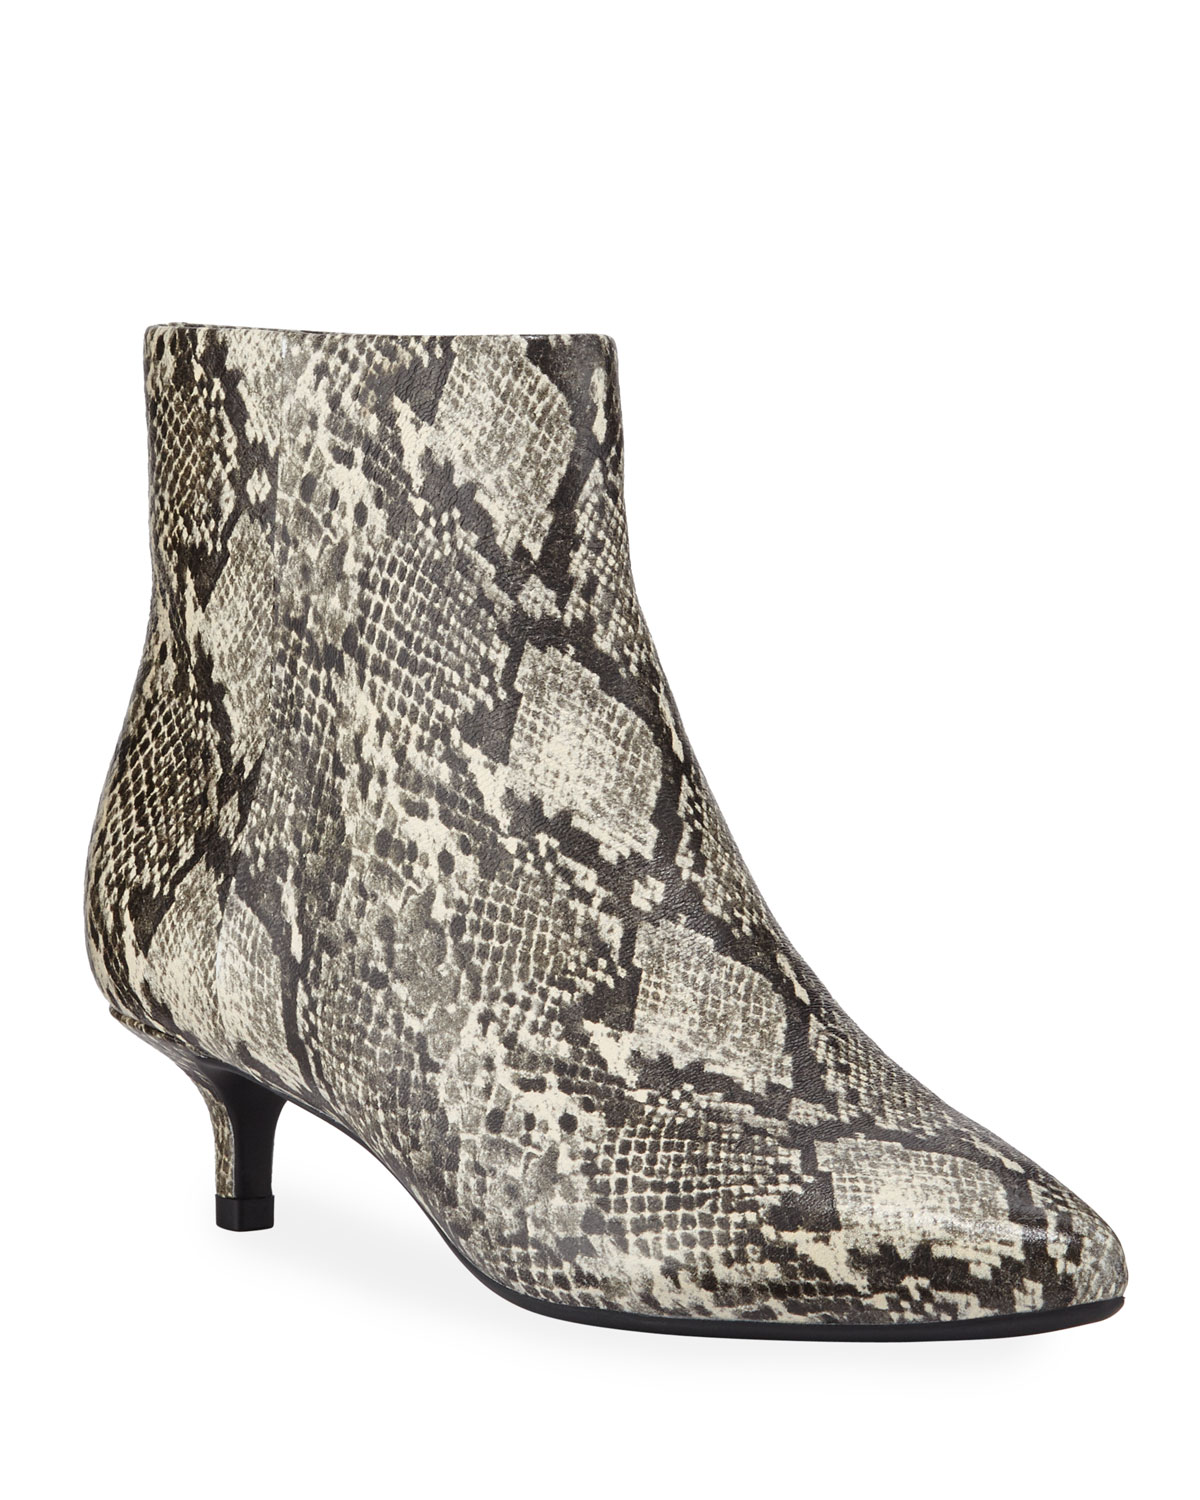 Nelli Snake-Printed Leather Ankle Booties